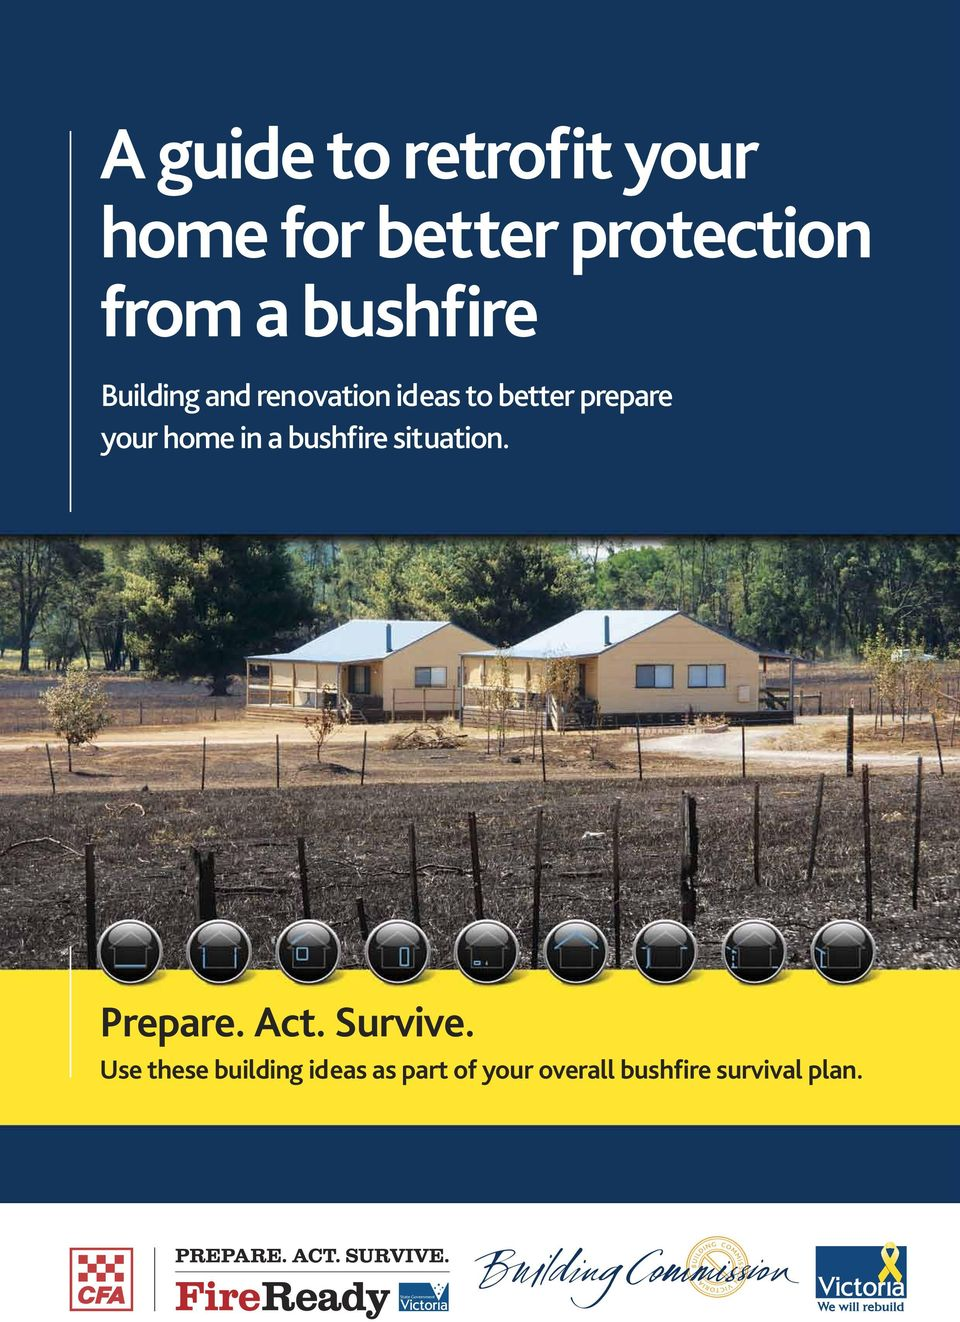 home in a bushfire situation. Prepare. Act. Survive.